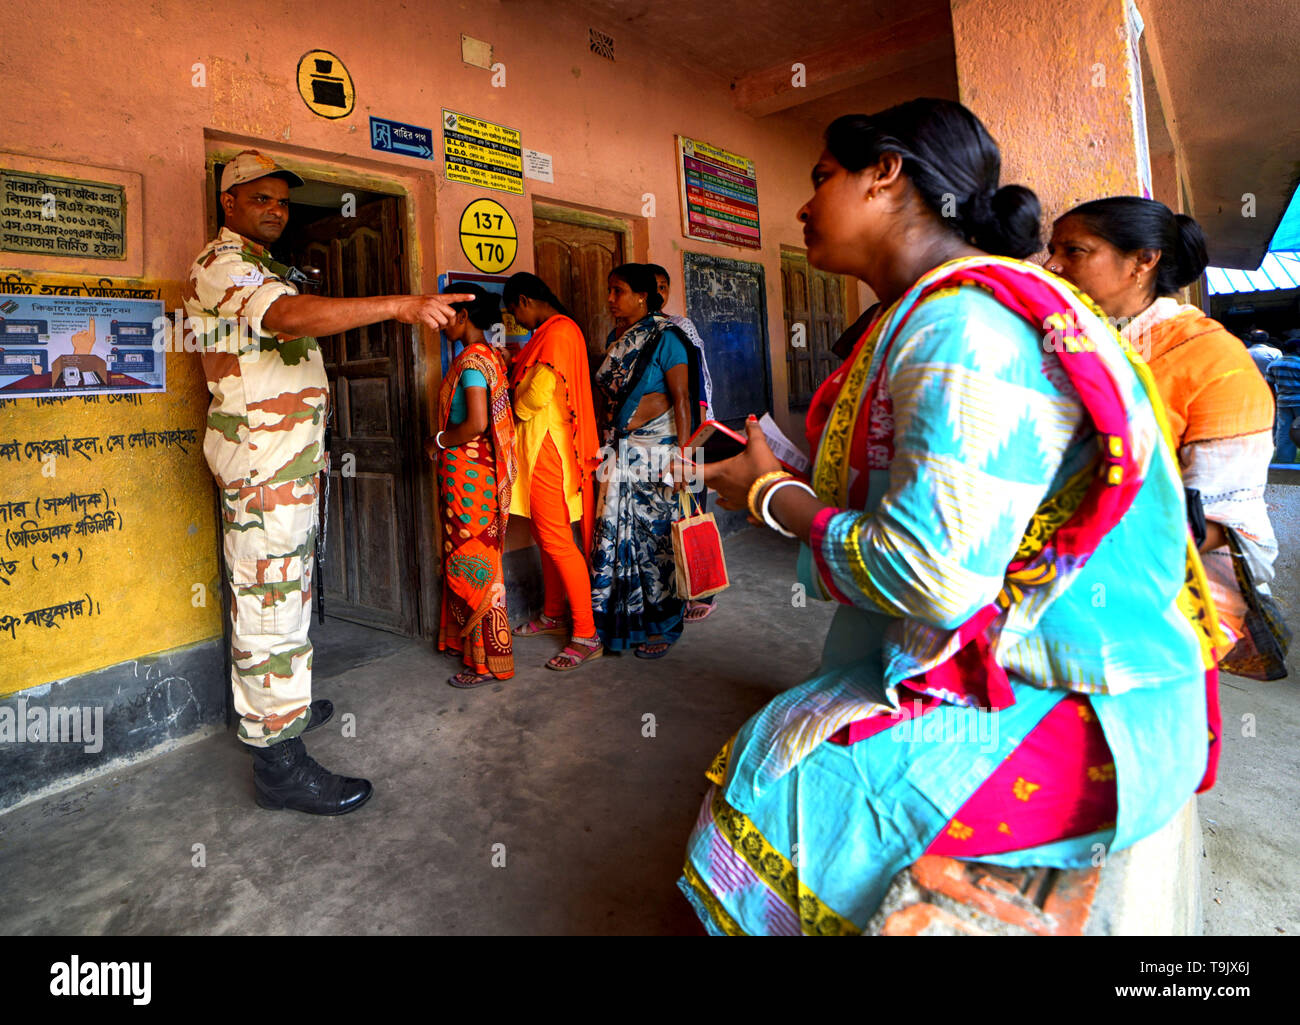 A CISF (Central Industrial Security Force) officer seen making  a gesture during the 7th Phase (Final Phase) of General Elections in Baruipur, west Bengal. Voting has begun for the 7th phase (final phase) elections in Baruipur, West Bengal. - Stock Image